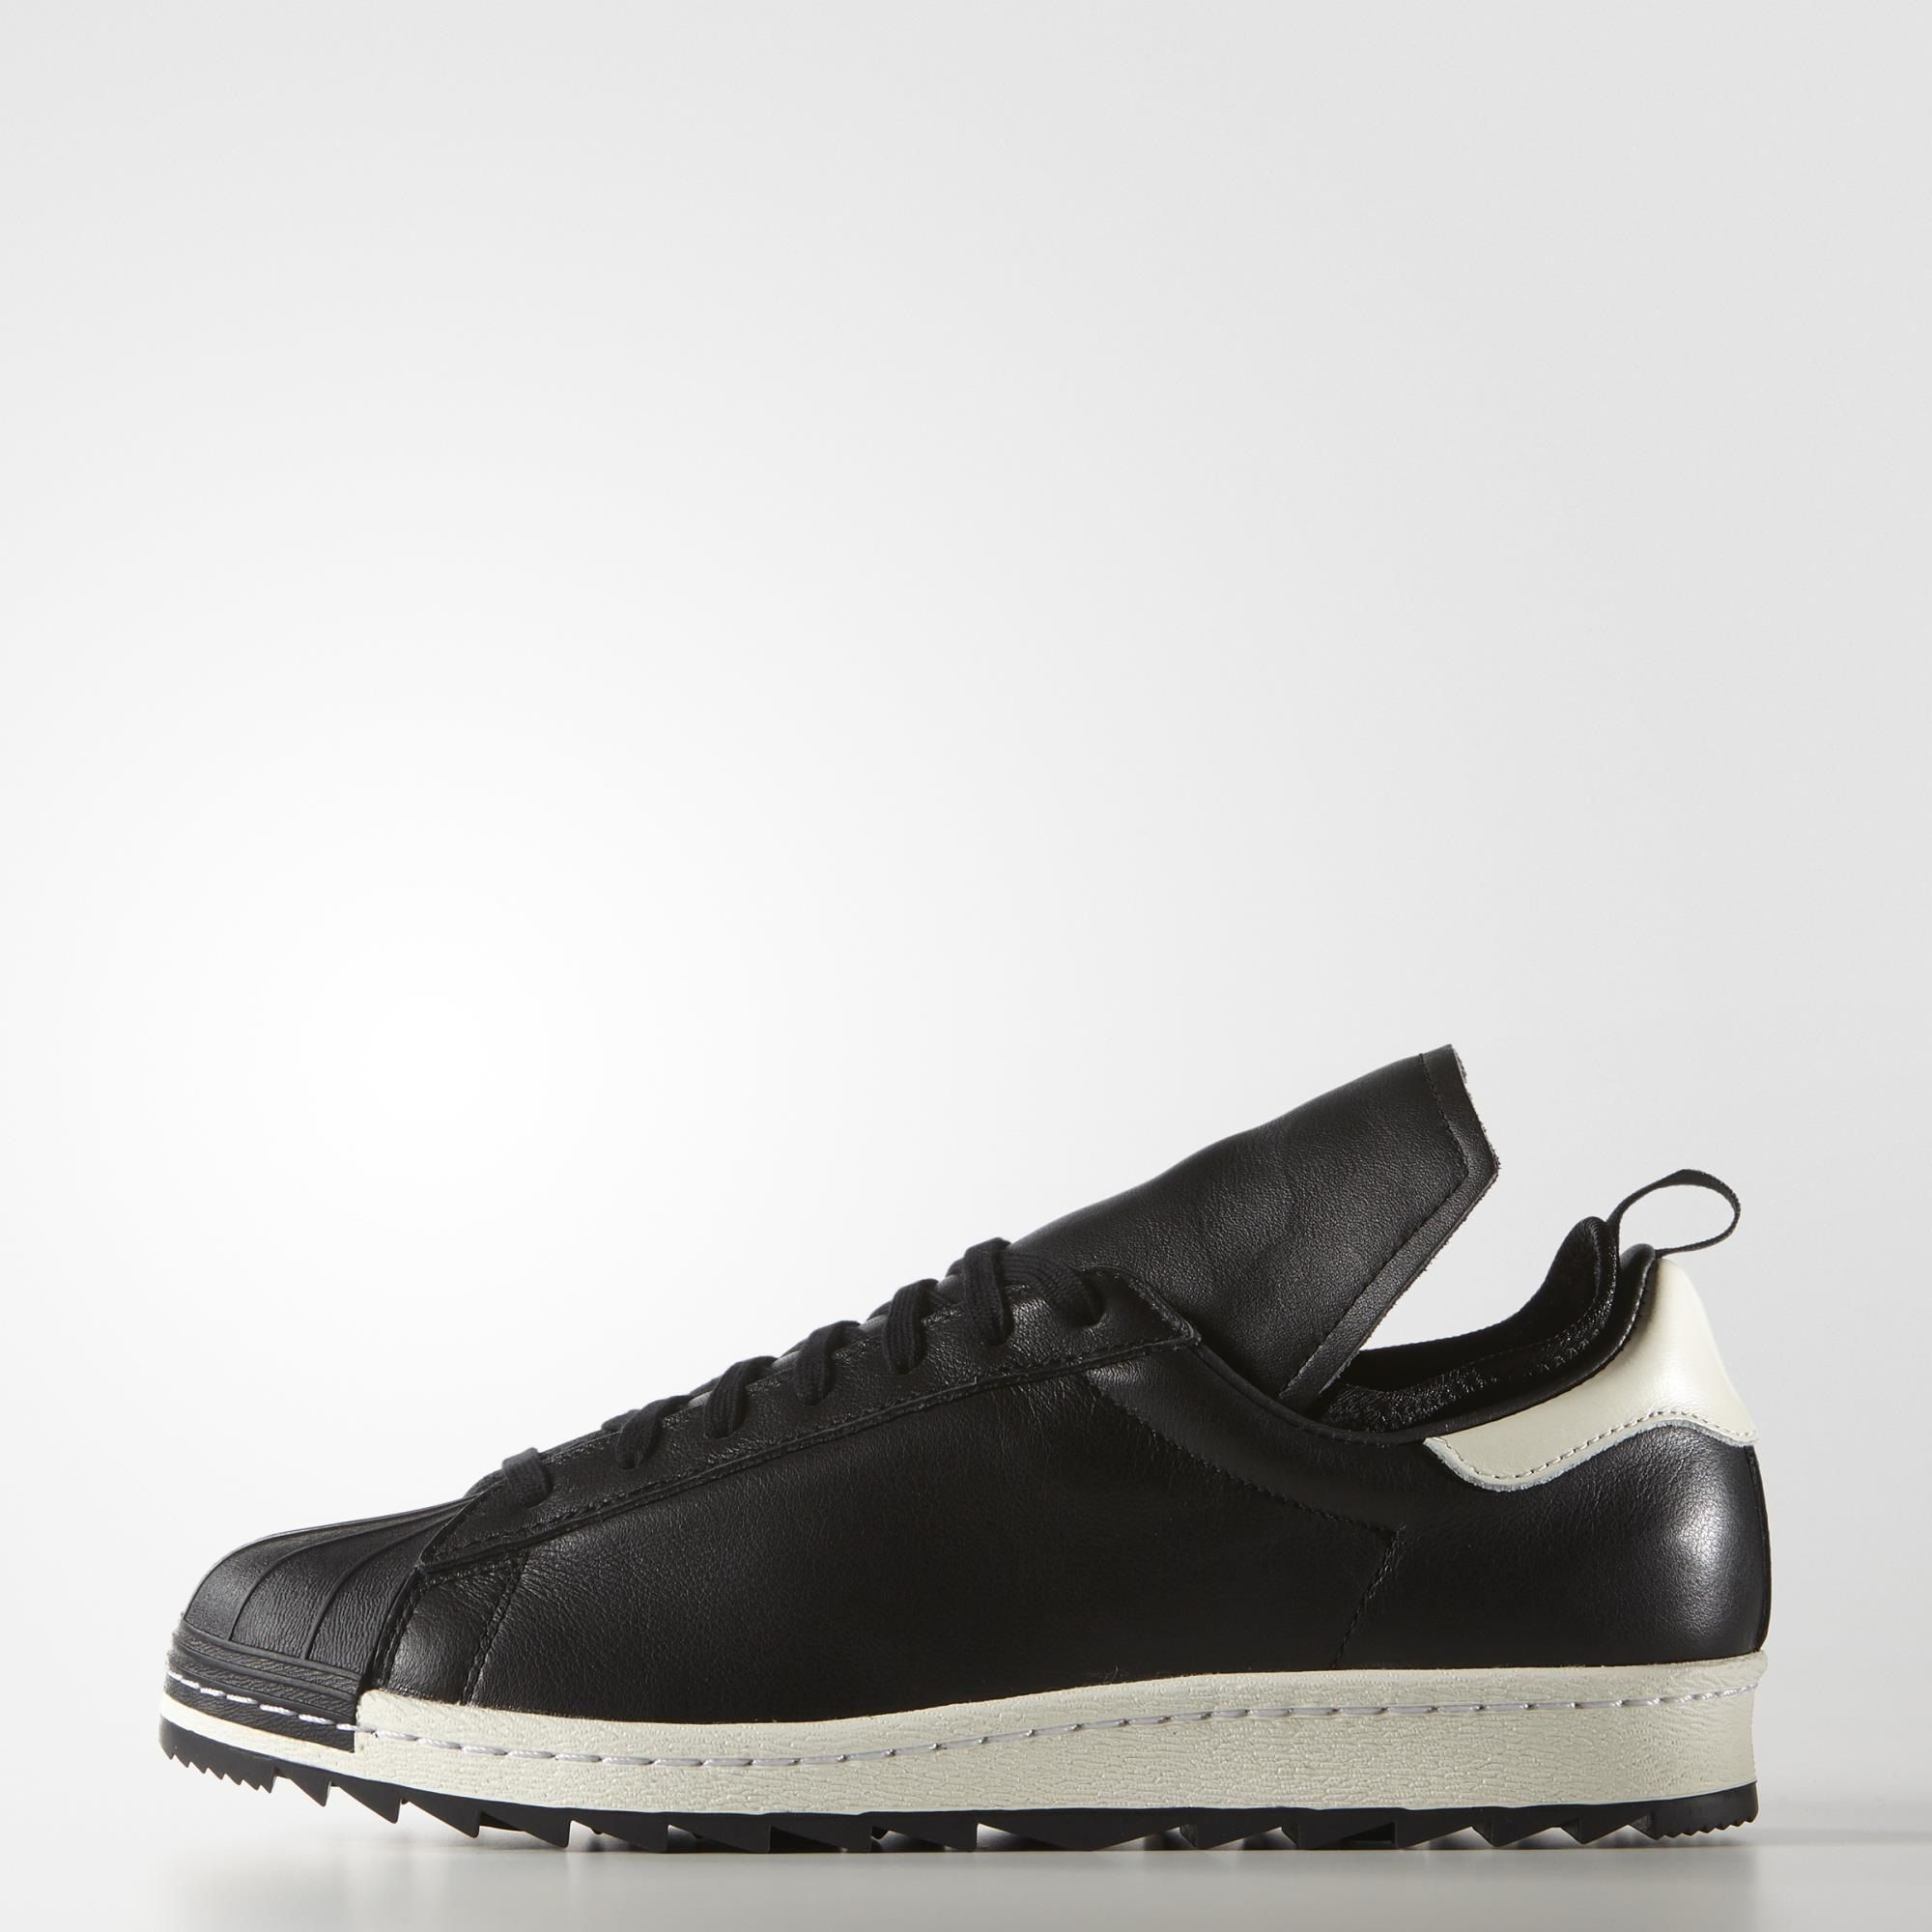 A remastered release of a street style hero. These men's shoes update the  legendary look